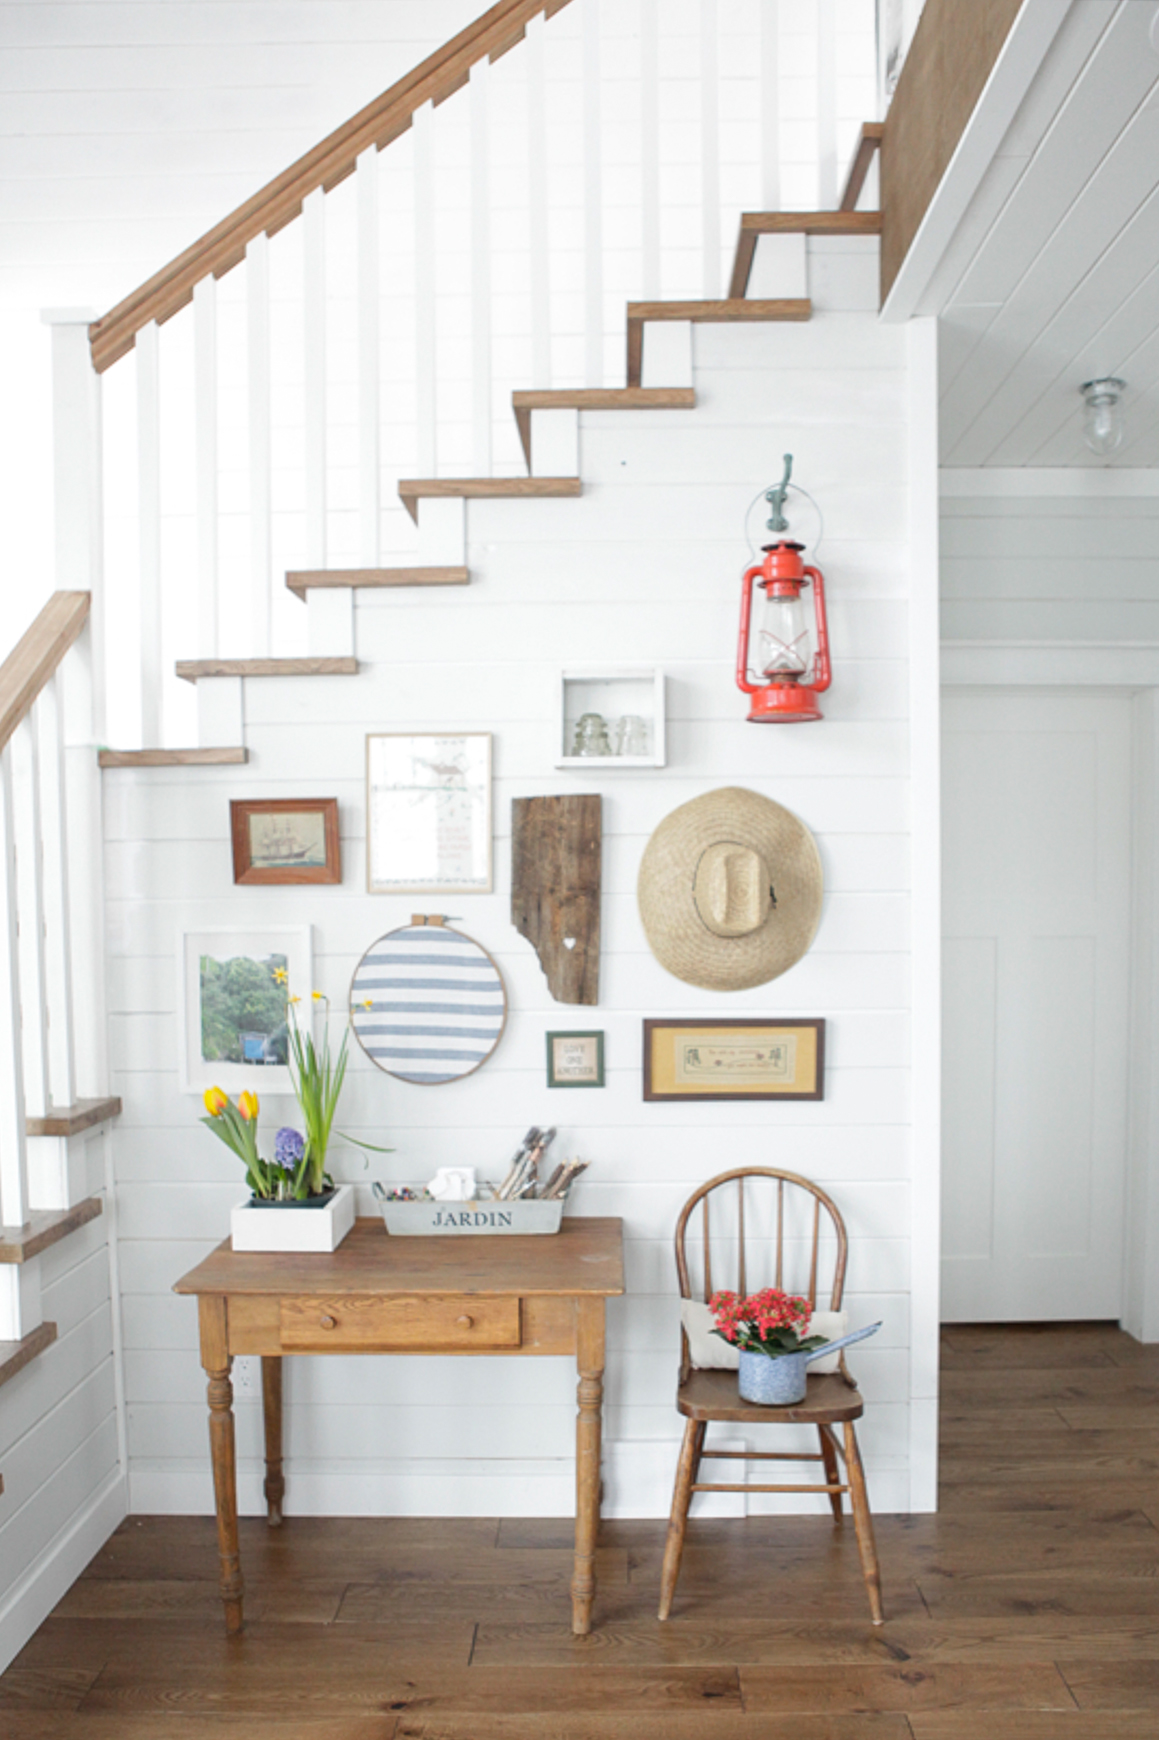 Gallery Wall | Ashlea Kooman